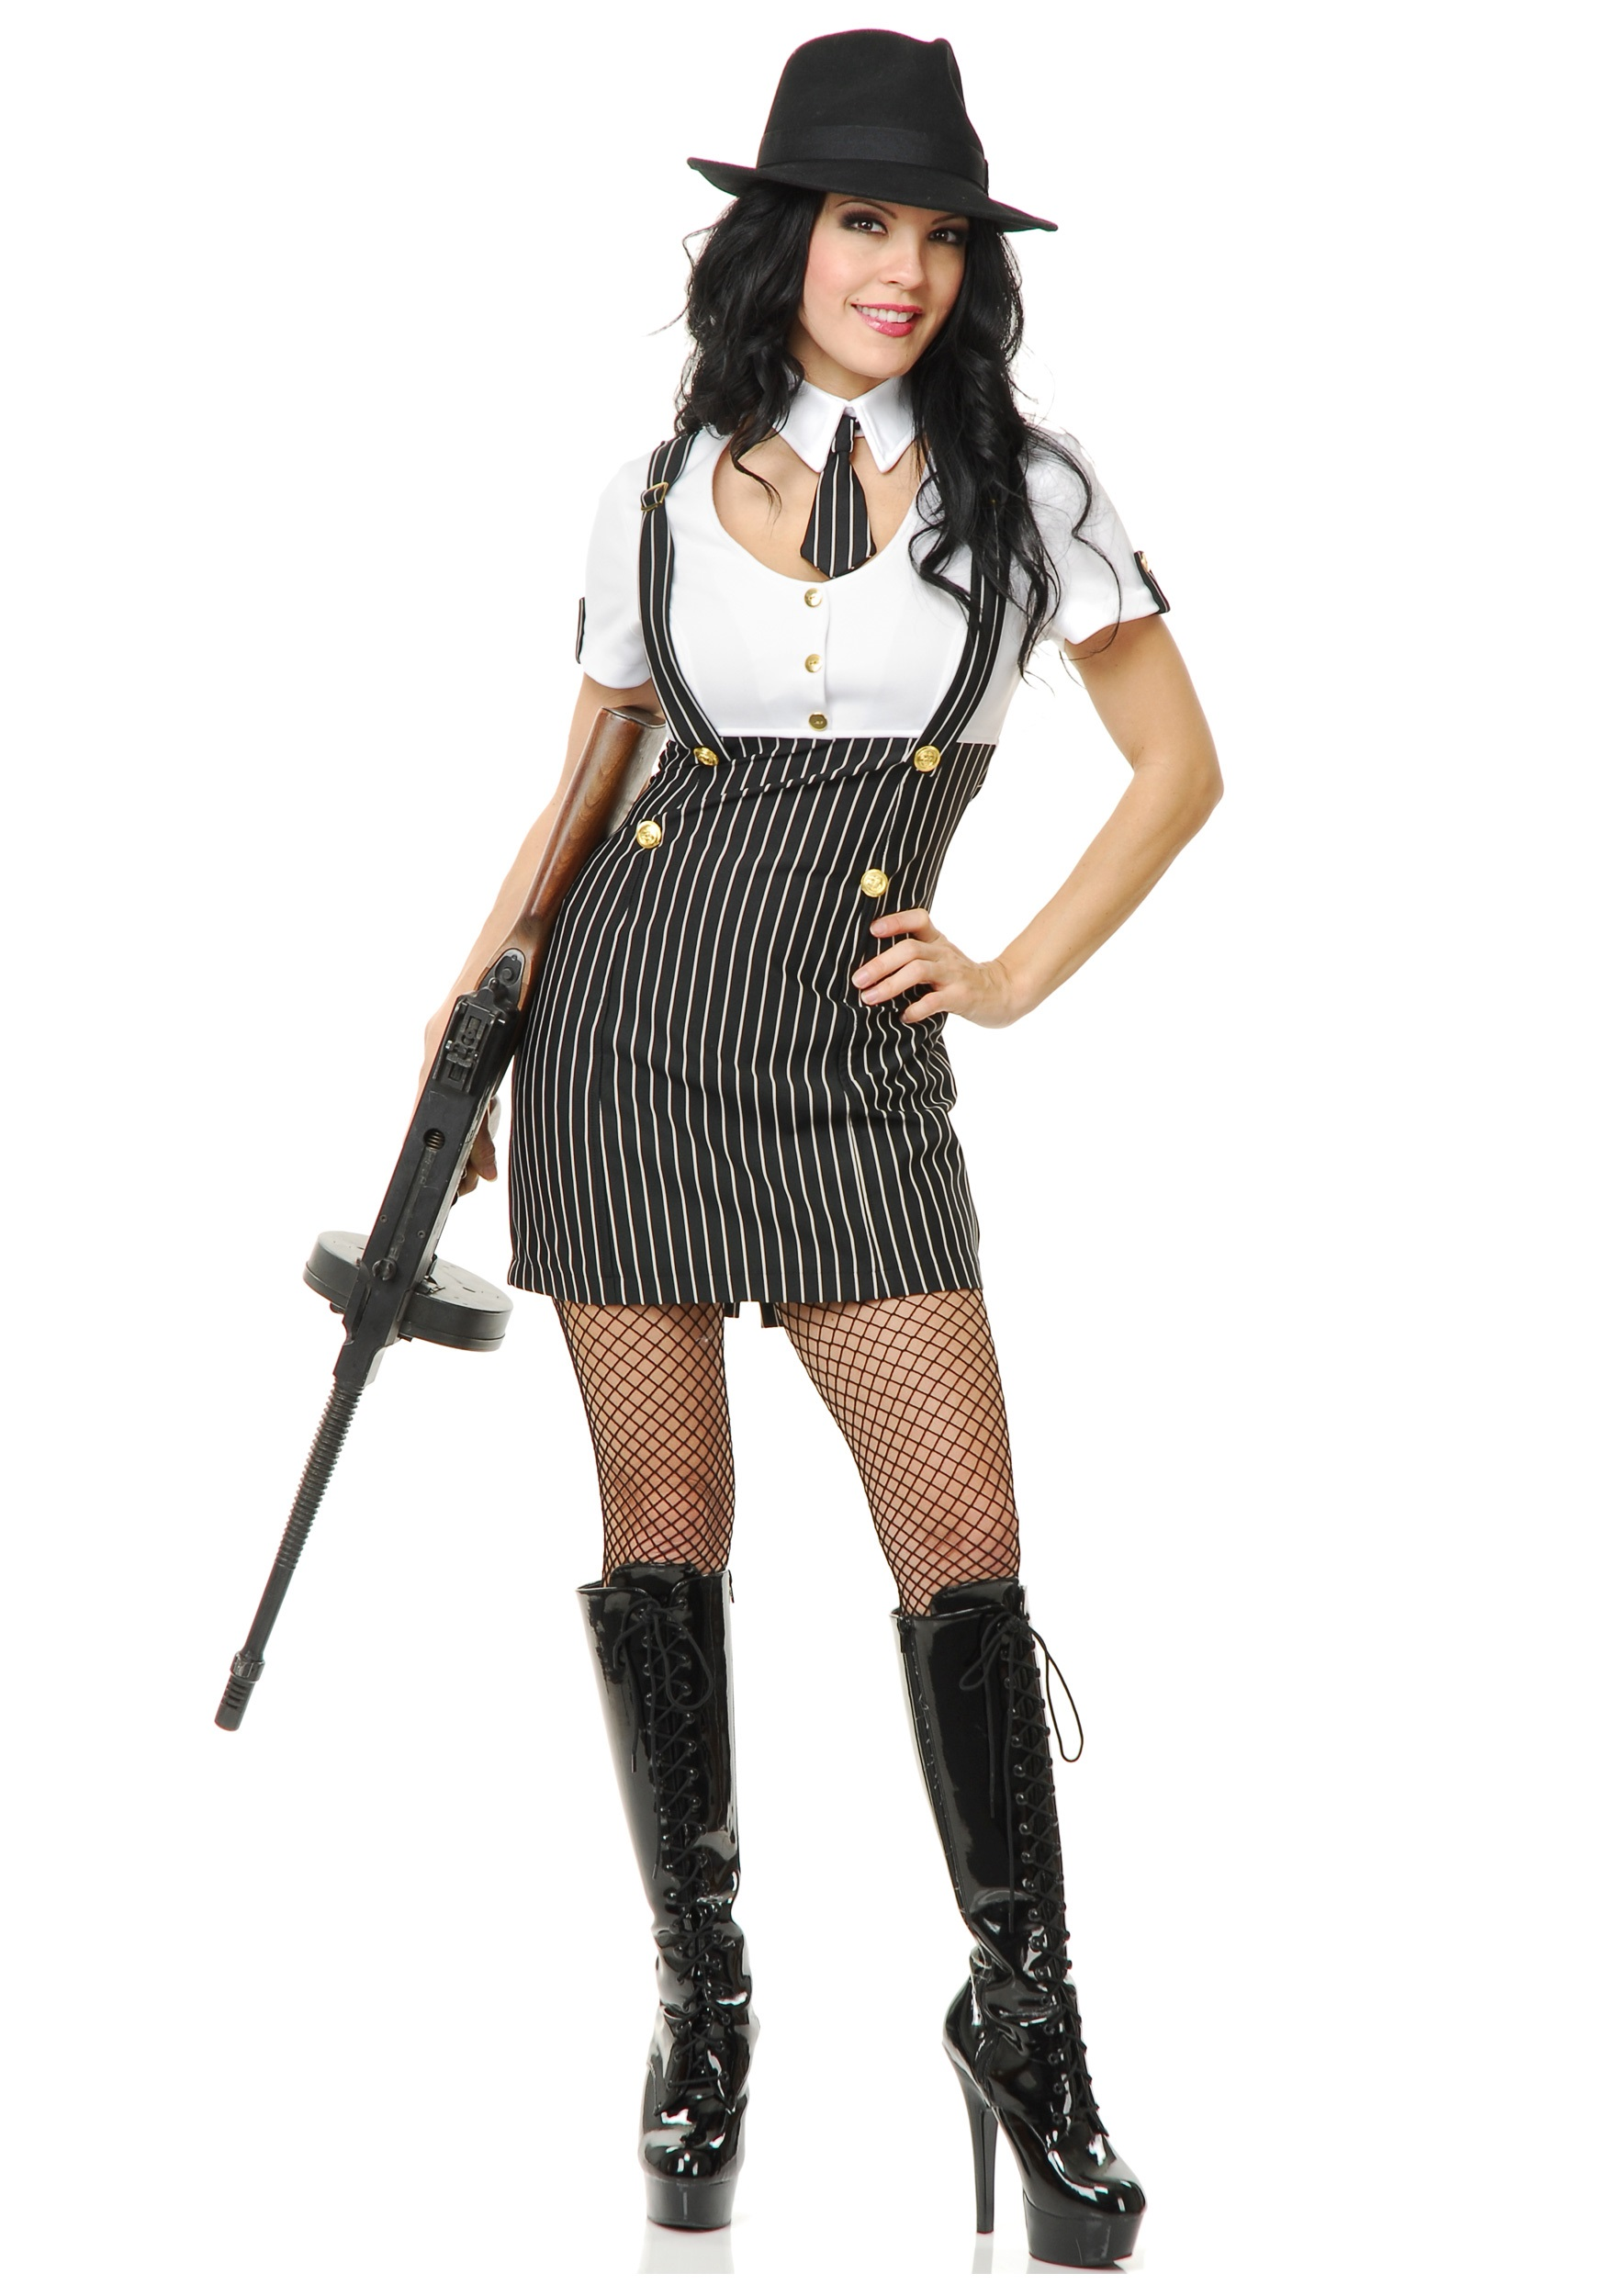 https://images.halloweencostumes.com/products/11358/1-1/gangster-girl-costume.jpg